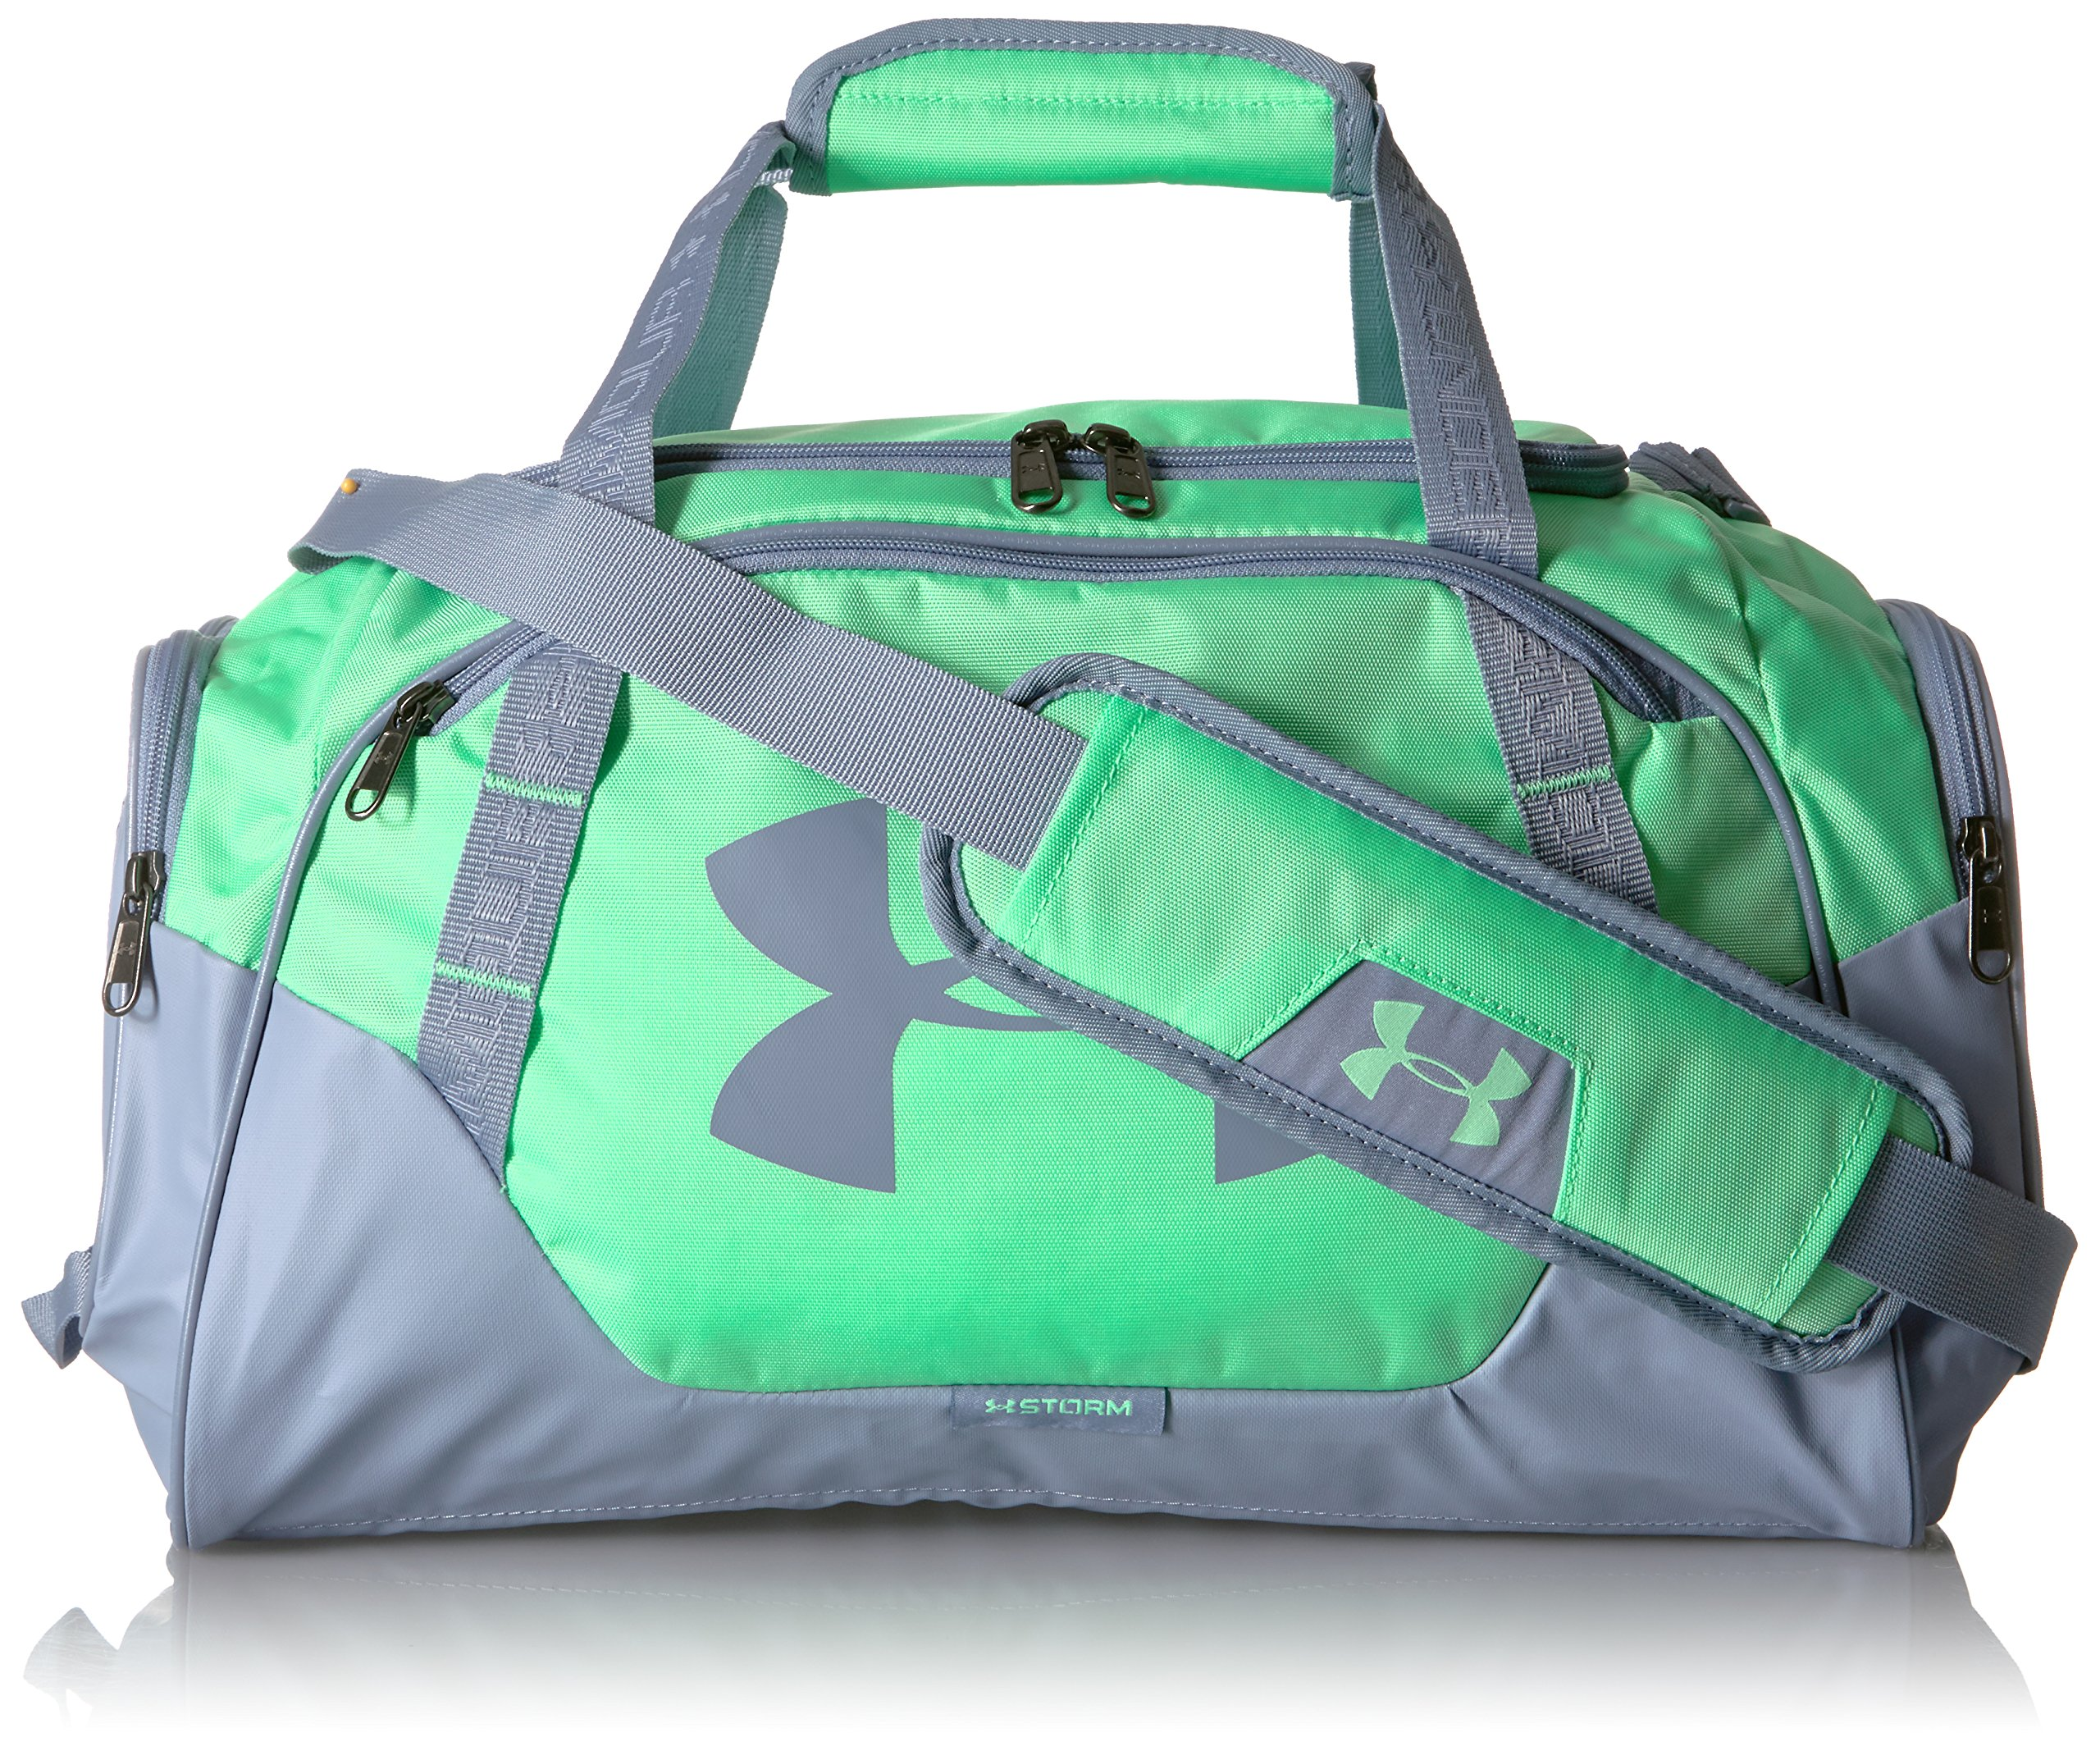 d64e88fe4e1 Galleon - Under Armour Undeniable Duffle 3.0 Gym Bag, Green Typhoon  (375)/Washed Blue,